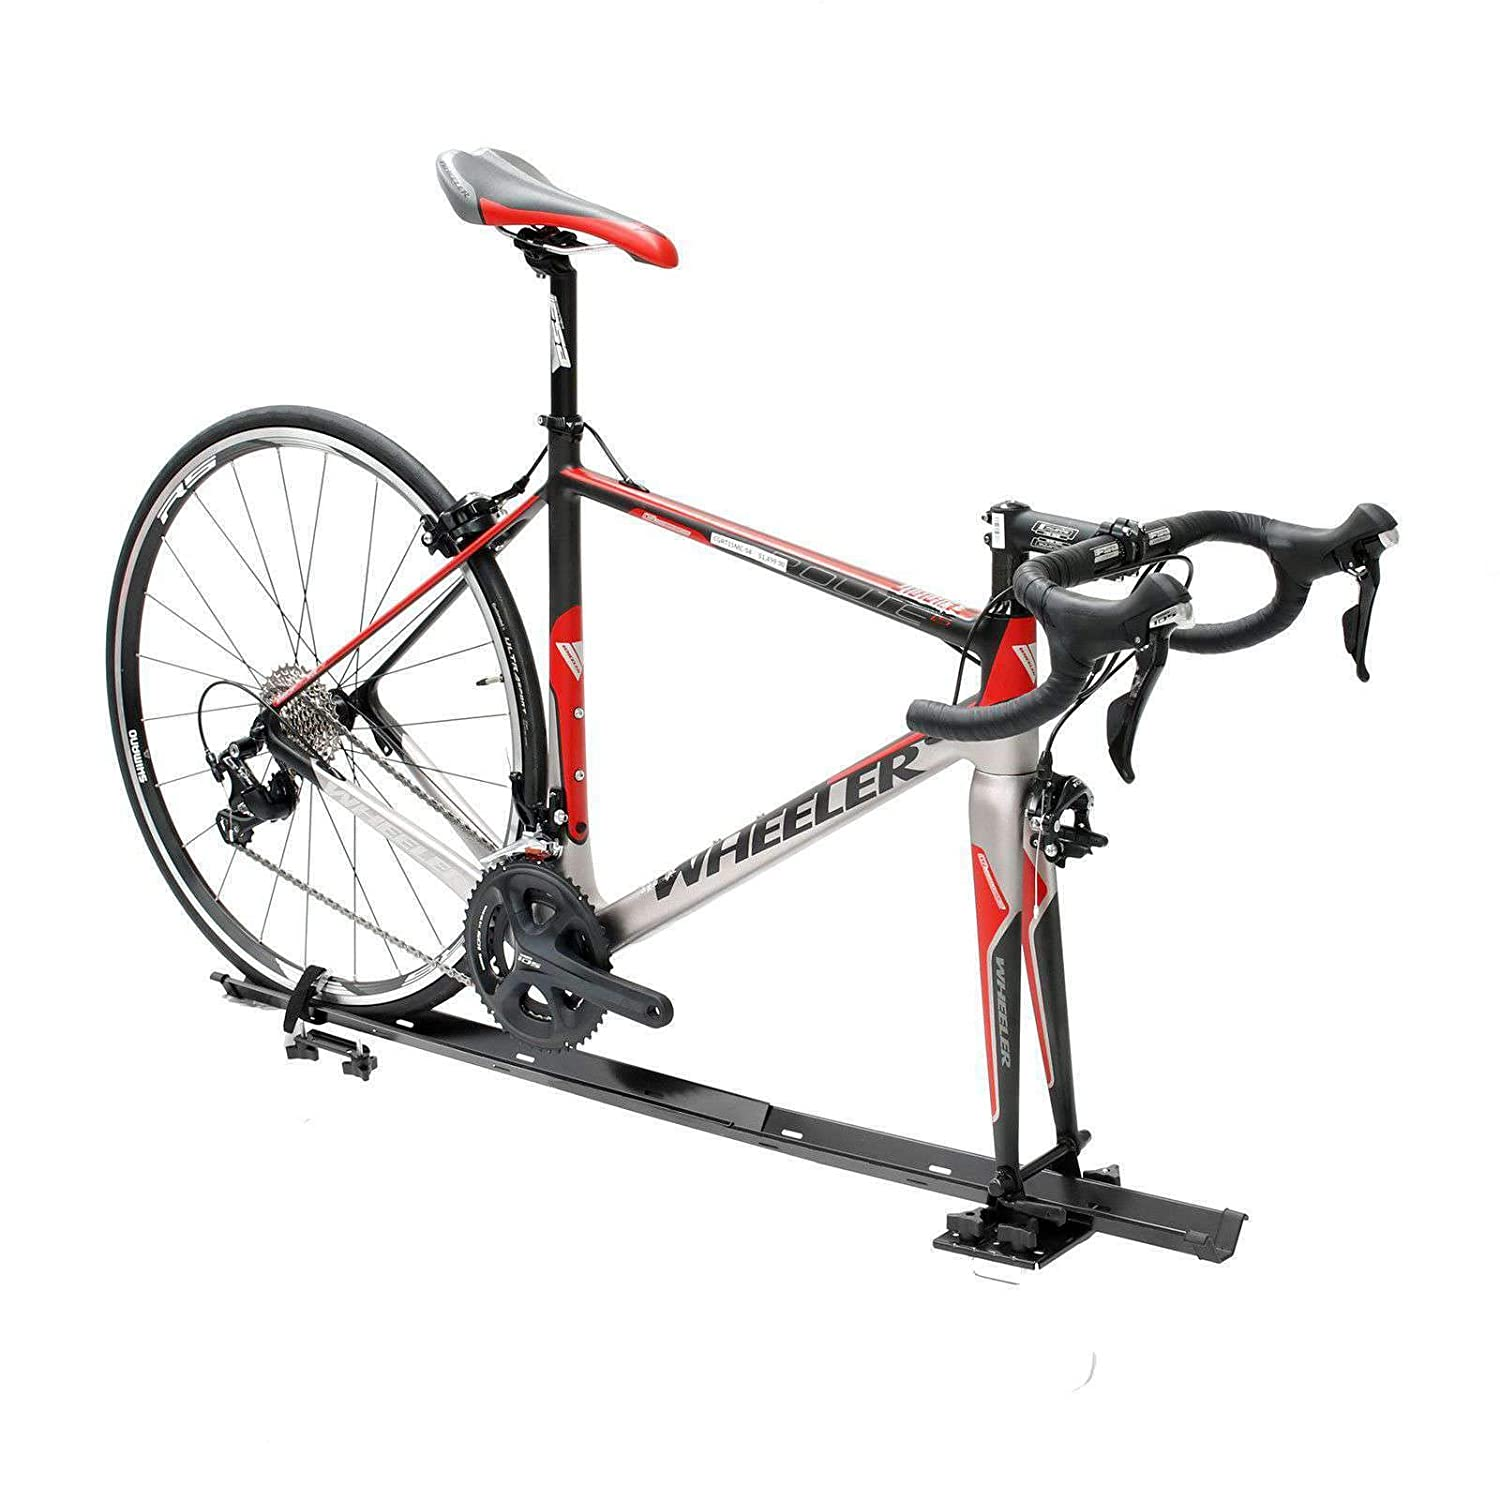 CyclingDeal 1 Bike Bicycle Car Roof Rooftop Carrier Fork Mount Rack